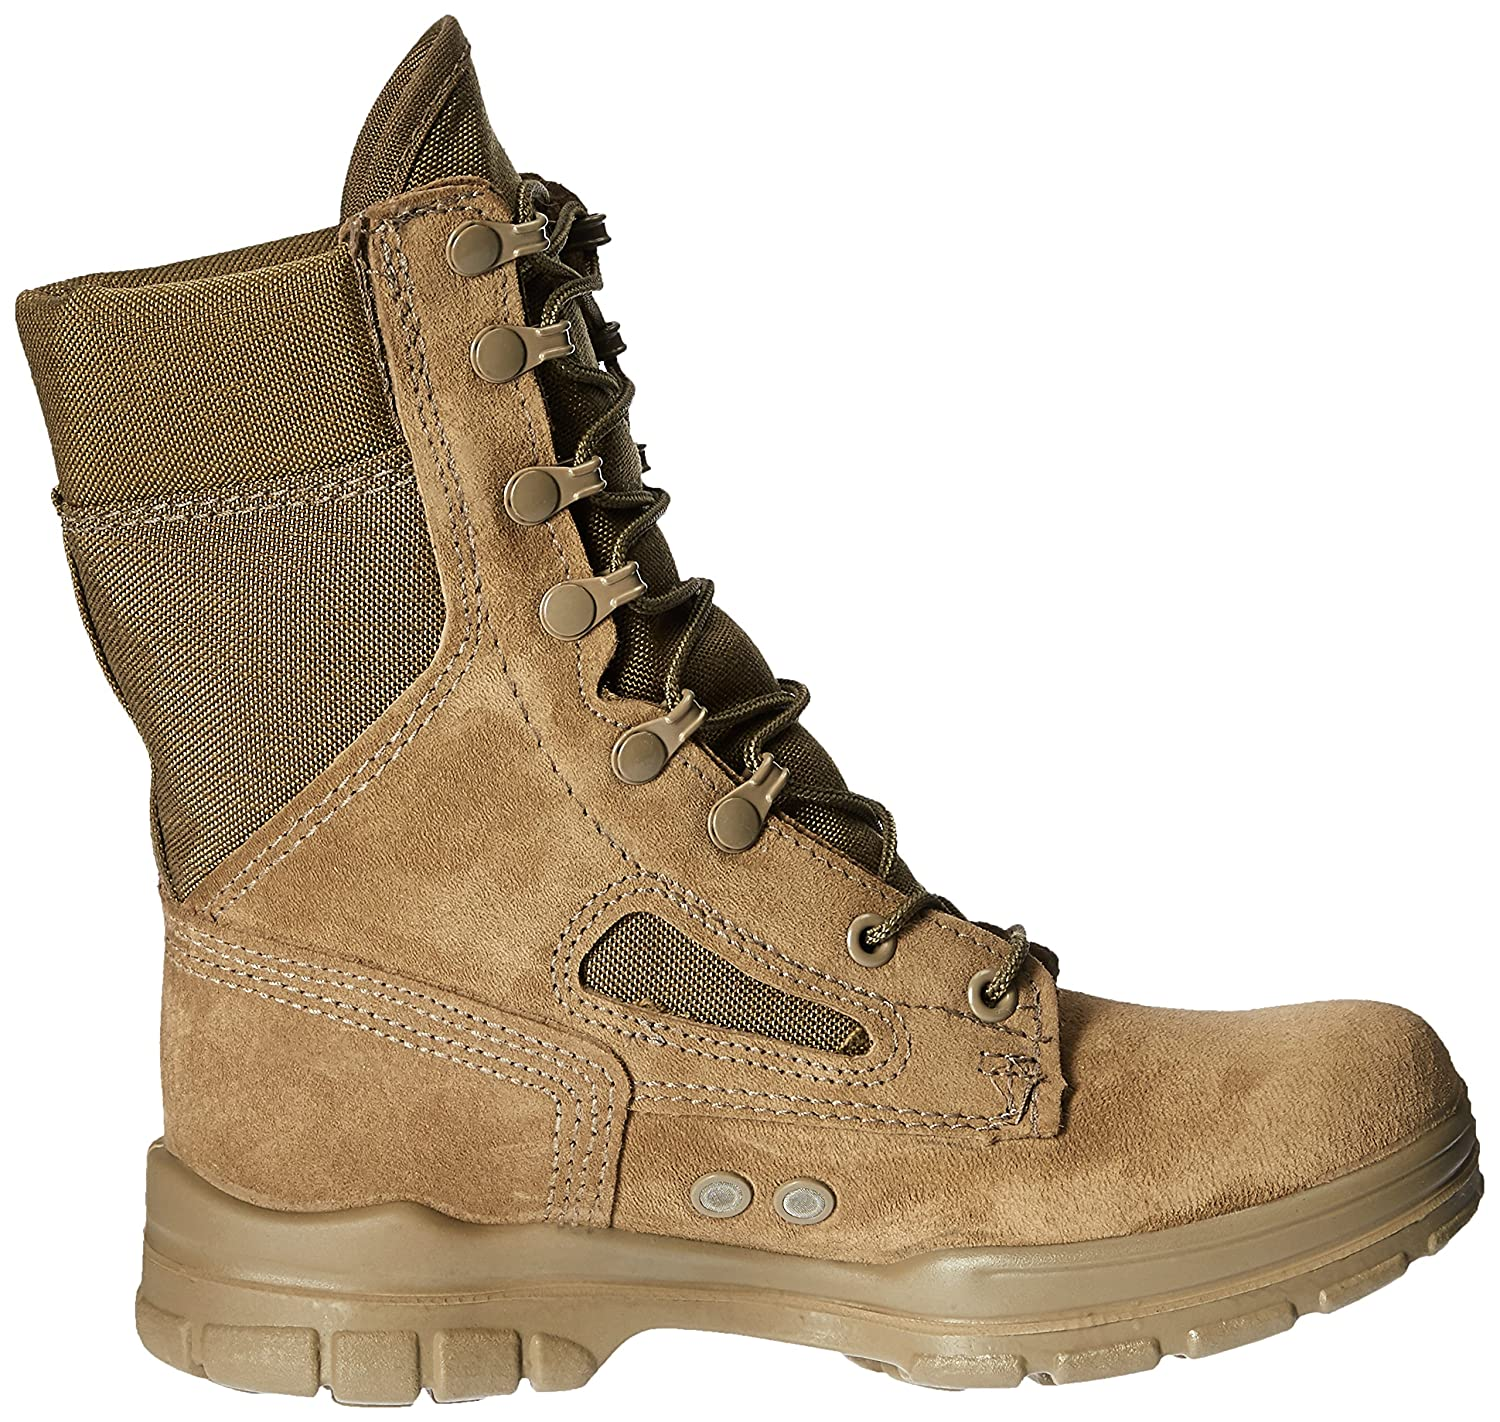 Bates Women's USMC Lightweight DuraShocks Military and Tactical Boot B000G7T8B4 9.5 M US|Olive Mojave